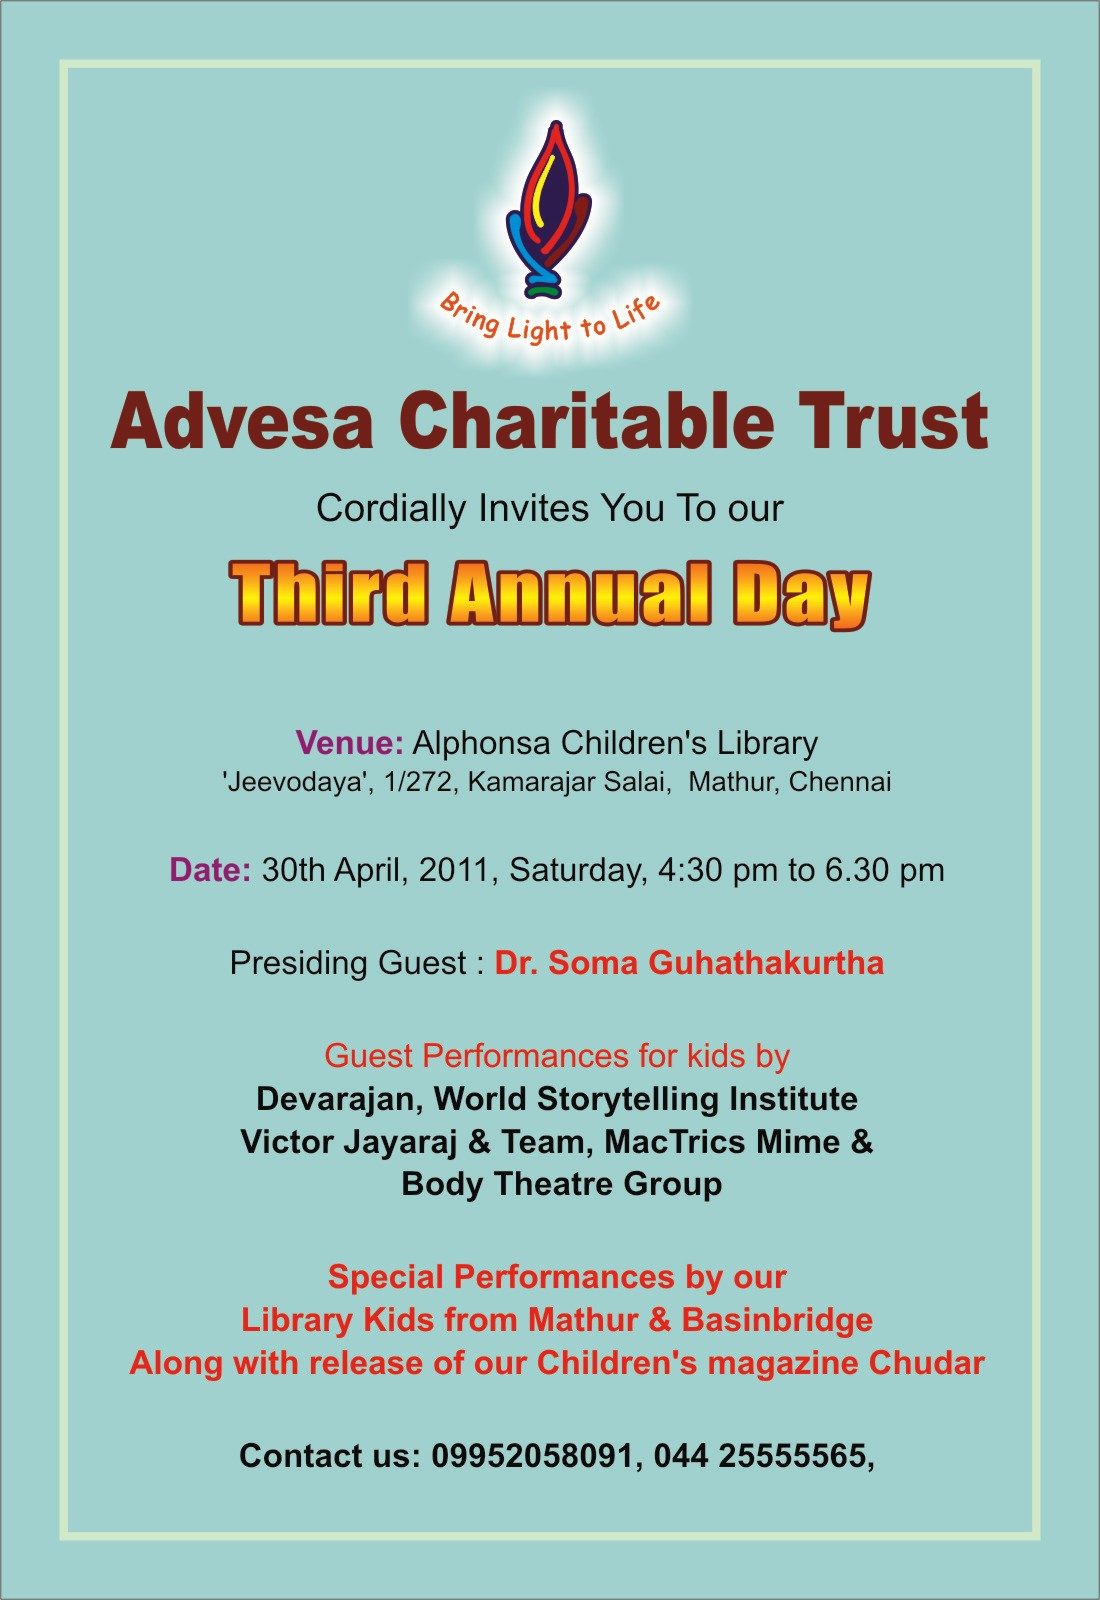 Bonsai bumblings advesa charitable trust third annual day the two libraries in combination have about 581 children as members and house 1585 books for kids visit advesa website advesa and you can reach us stopboris Choice Image